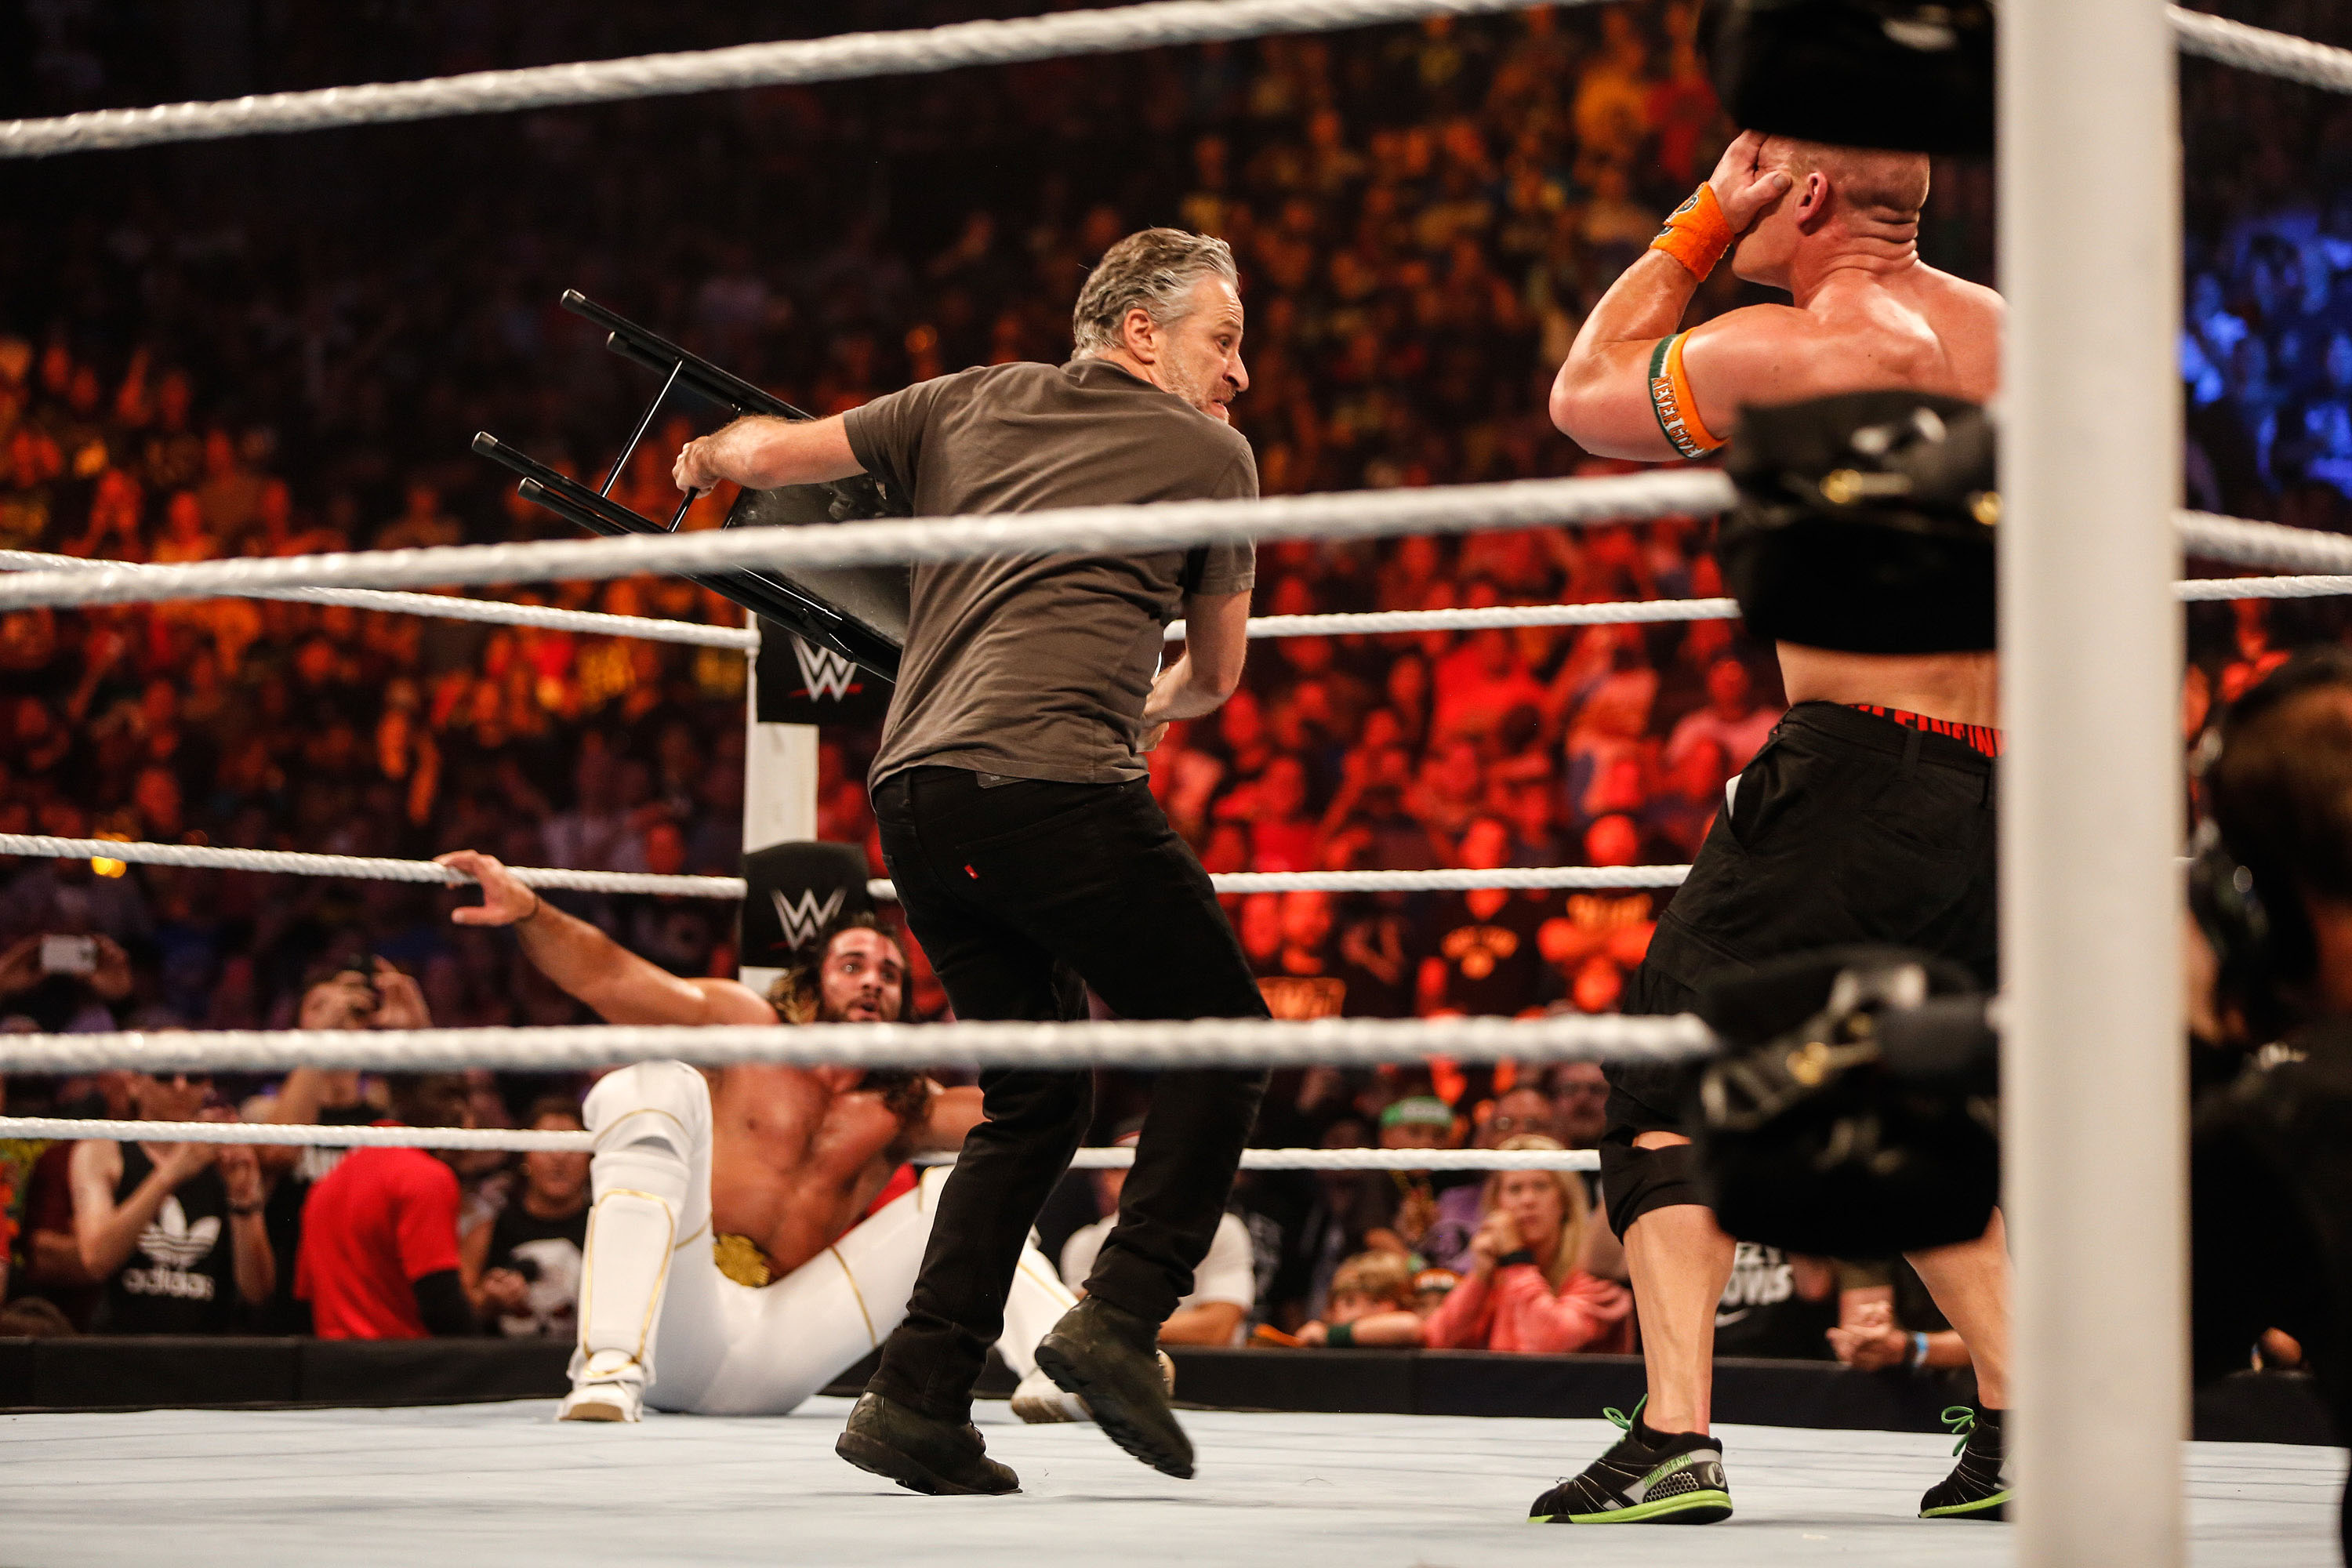 Jon Stewart gets into the action at WWE SummerSlam 2015 Barclays Center of Brooklyn in New York City on Aug. 23, 2015.